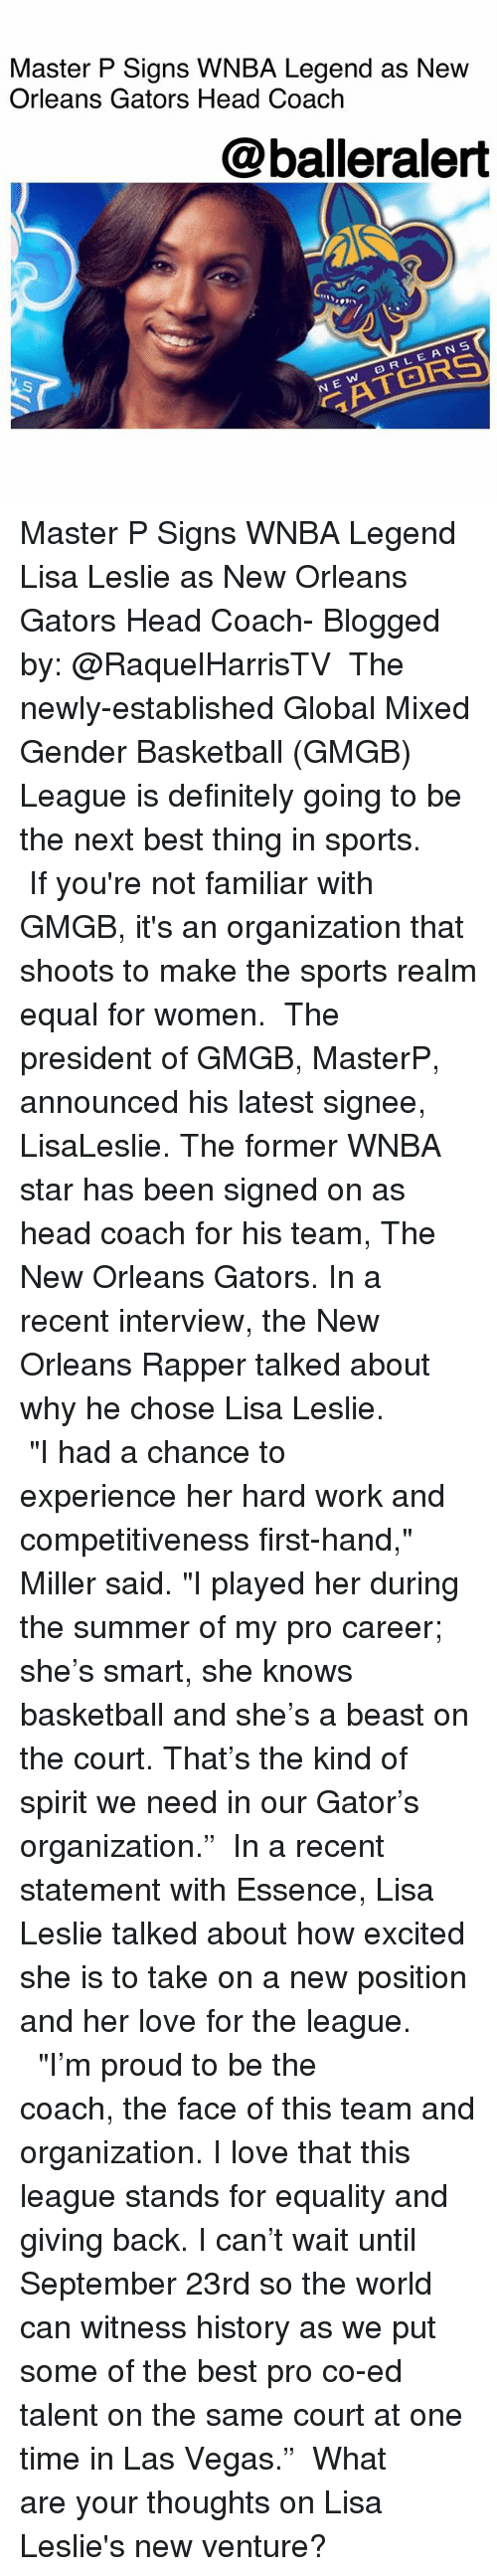 "courting: Master P Signs WNBA Legend as Nevw  Orleans Gators Head Coach  @balleralert  On  RLEANS  N E Master P Signs WNBA Legend Lisa Leslie as New Orleans Gators Head Coach- Blogged by: @RaquelHarrisTV ⠀⠀⠀⠀⠀⠀⠀ The newly-established Global Mixed Gender Basketball (GMGB) League is definitely going to be the next best thing in sports. ⠀⠀⠀⠀⠀⠀⠀ If you're not familiar with GMGB, it's an organization that shoots to make the sports realm equal for women. ⠀⠀⠀⠀⠀⠀⠀ The president of GMGB, MasterP, announced his latest signee, LisaLeslie. The former WNBA star has been signed on as head coach for his team, The New Orleans Gators. In a recent interview, the New Orleans Rapper talked about why he chose Lisa Leslie. ⠀⠀⠀⠀⠀⠀⠀ ⠀⠀⠀⠀⠀⠀⠀ ""I had a chance to experience her hard work and competitiveness first-hand,"" Miller said. ""I played her during the summer of my pro career; she's smart, she knows basketball and she's a beast on the court. That's the kind of spirit we need in our Gator's organization."" ⠀⠀⠀⠀⠀⠀⠀ In a recent statement with Essence, Lisa Leslie talked about how excited she is to take on a new position and her love for the league. ⠀⠀⠀⠀⠀⠀⠀ ⠀⠀⠀⠀⠀⠀⠀ ""I'm proud to be the coach, the face of this team and organization. I love that this league stands for equality and giving back. I can't wait until September 23rd so the world can witness history as we put some of the best pro co-ed talent on the same court at one time in Las Vegas."" ⠀⠀⠀⠀⠀⠀⠀ What are your thoughts on Lisa Leslie's new venture?"